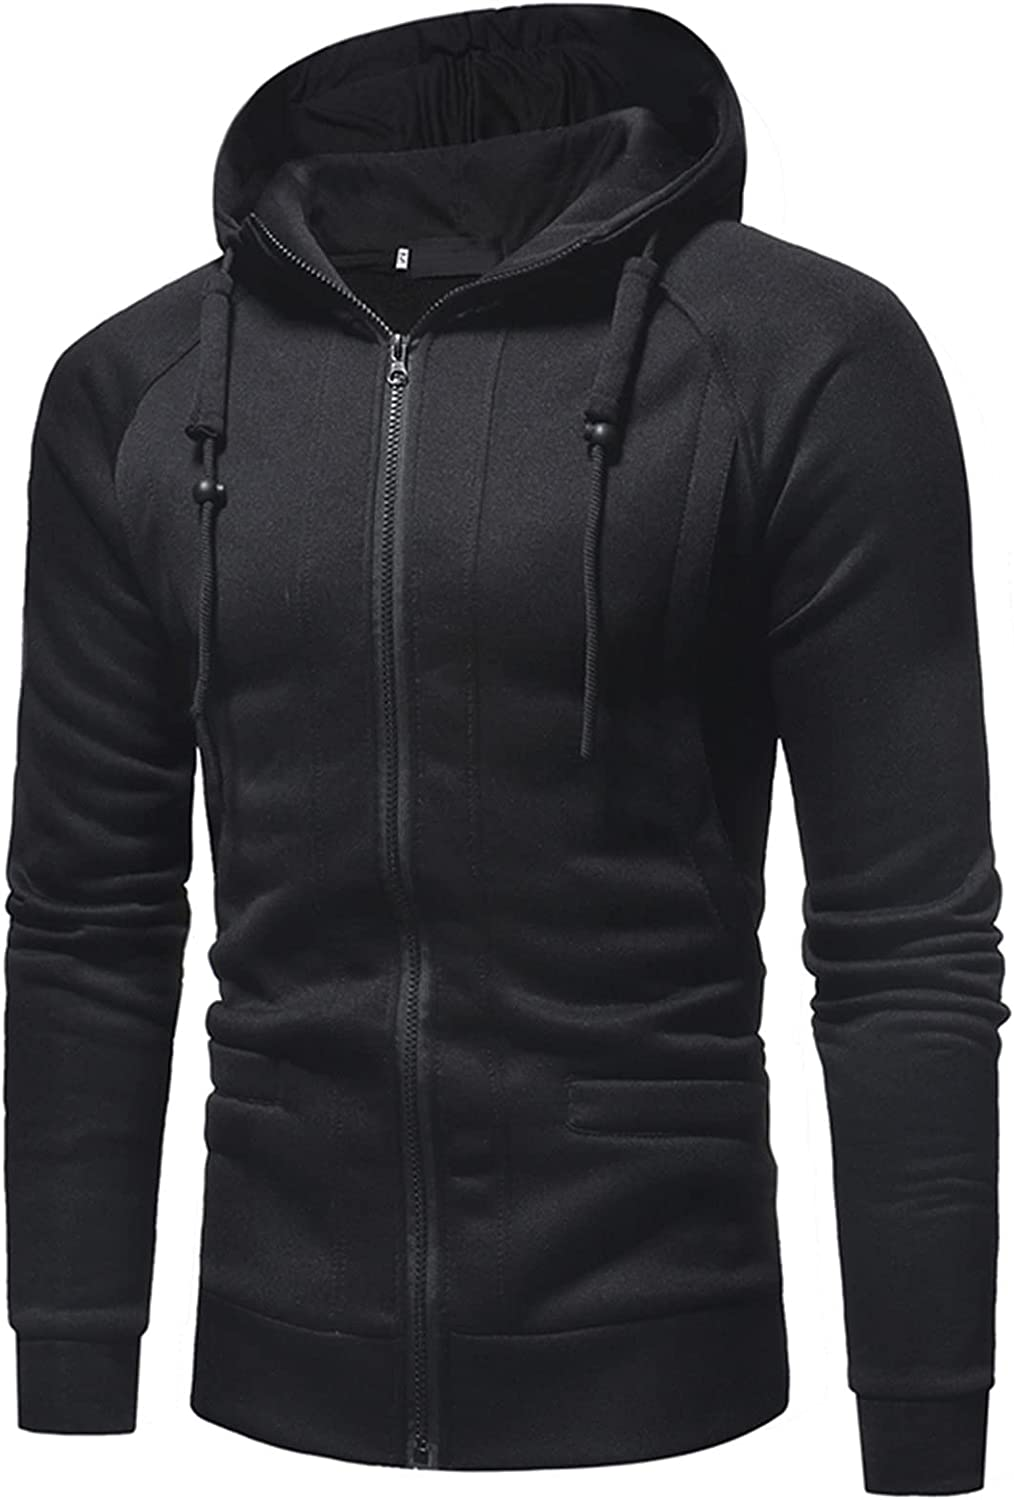 XXBR Hoodies for Mens, Zipper Tether Solid Hooded Sweatshirts Men's Fall Slim Fit Workout Fitness Sports Casual Jackets